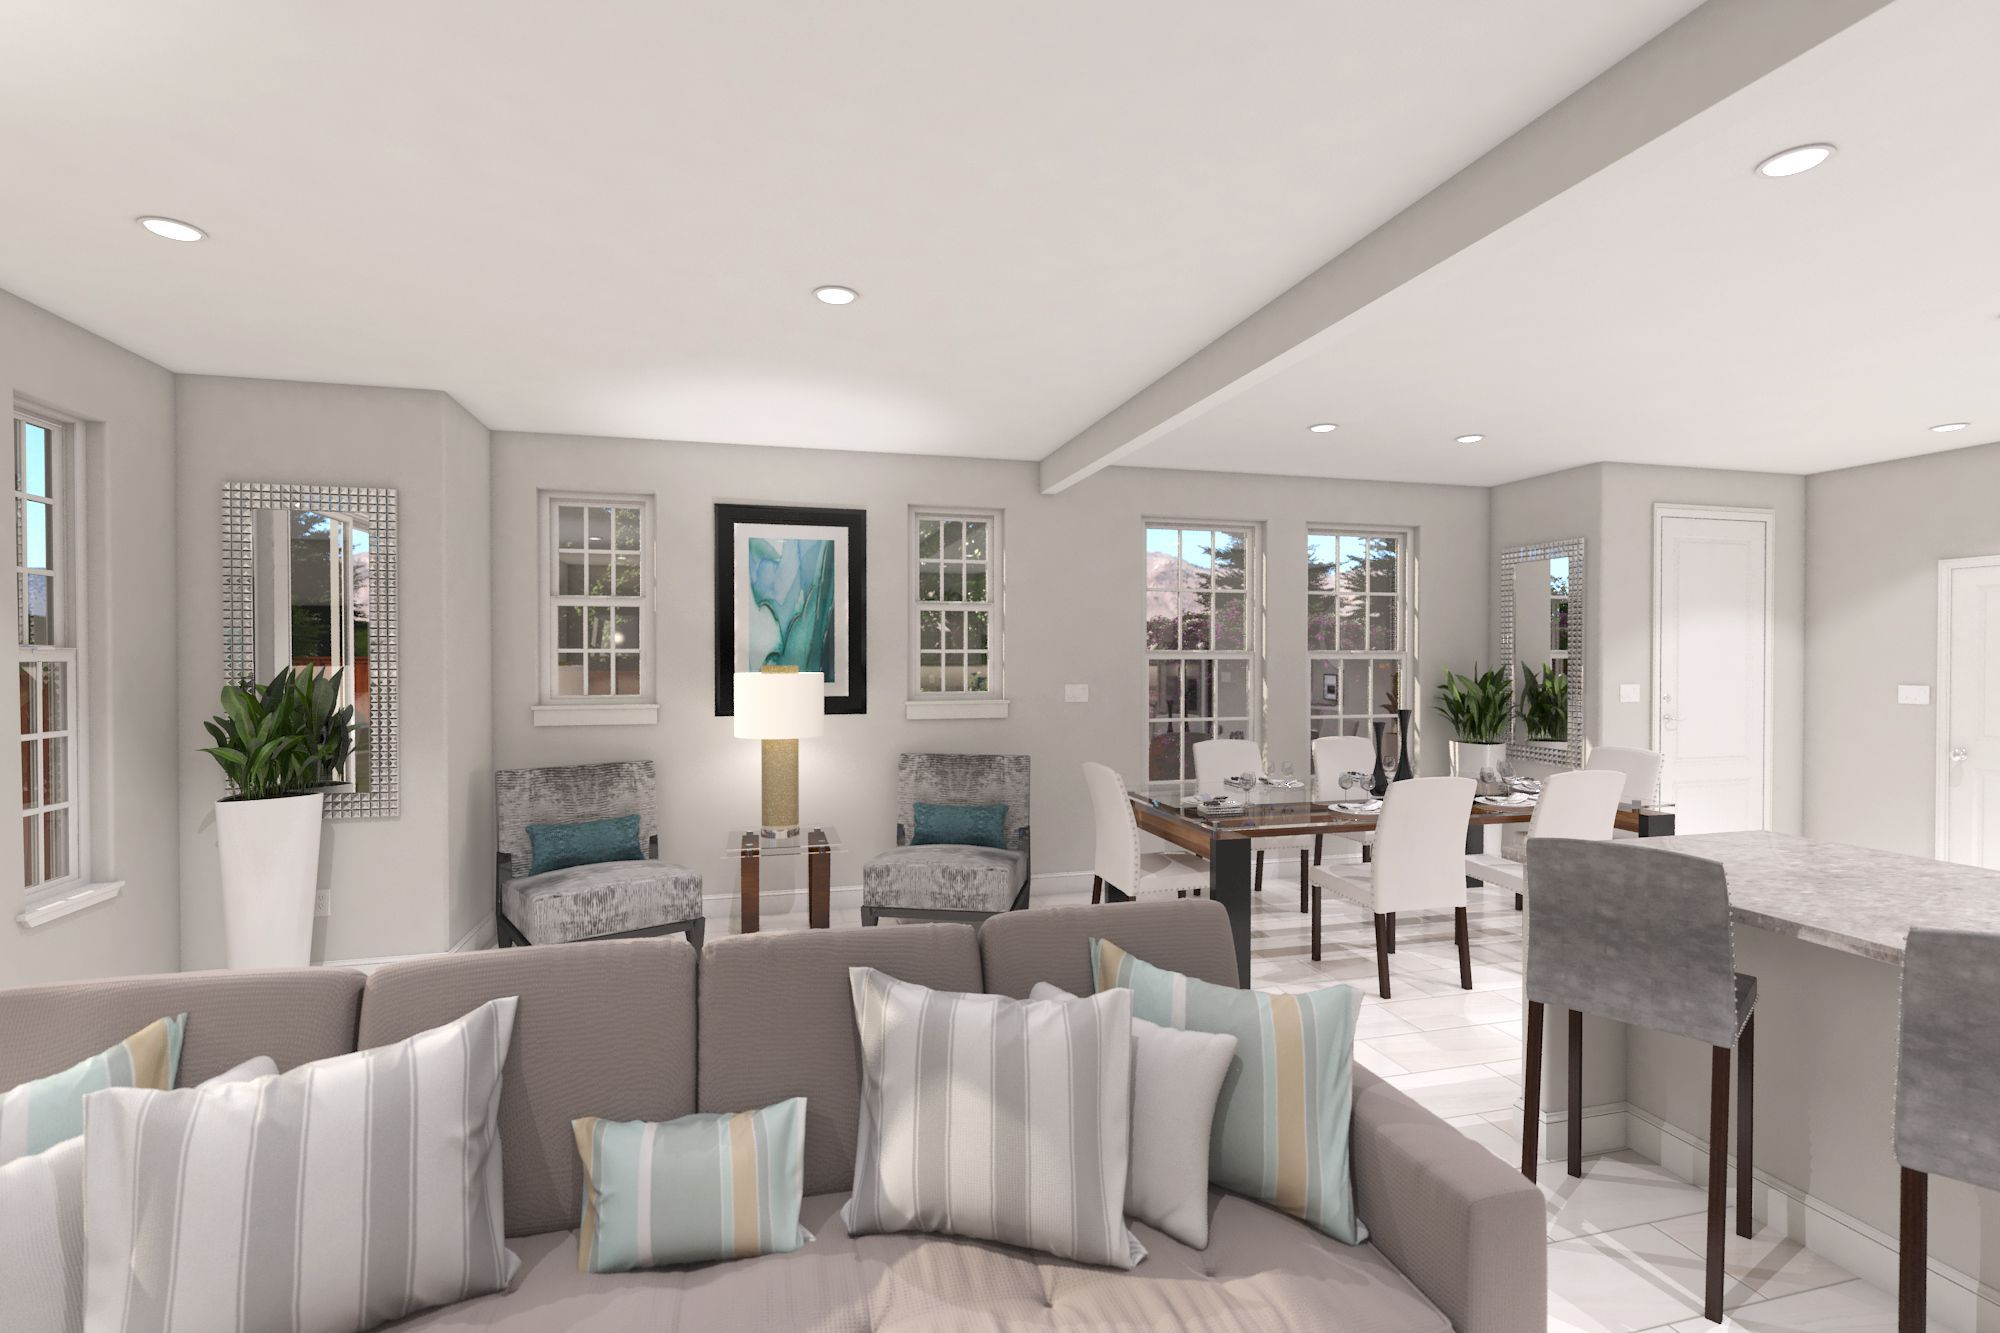 Living Area featured in the Plan C - 1831 By Jenuane Communities in Reno, NV